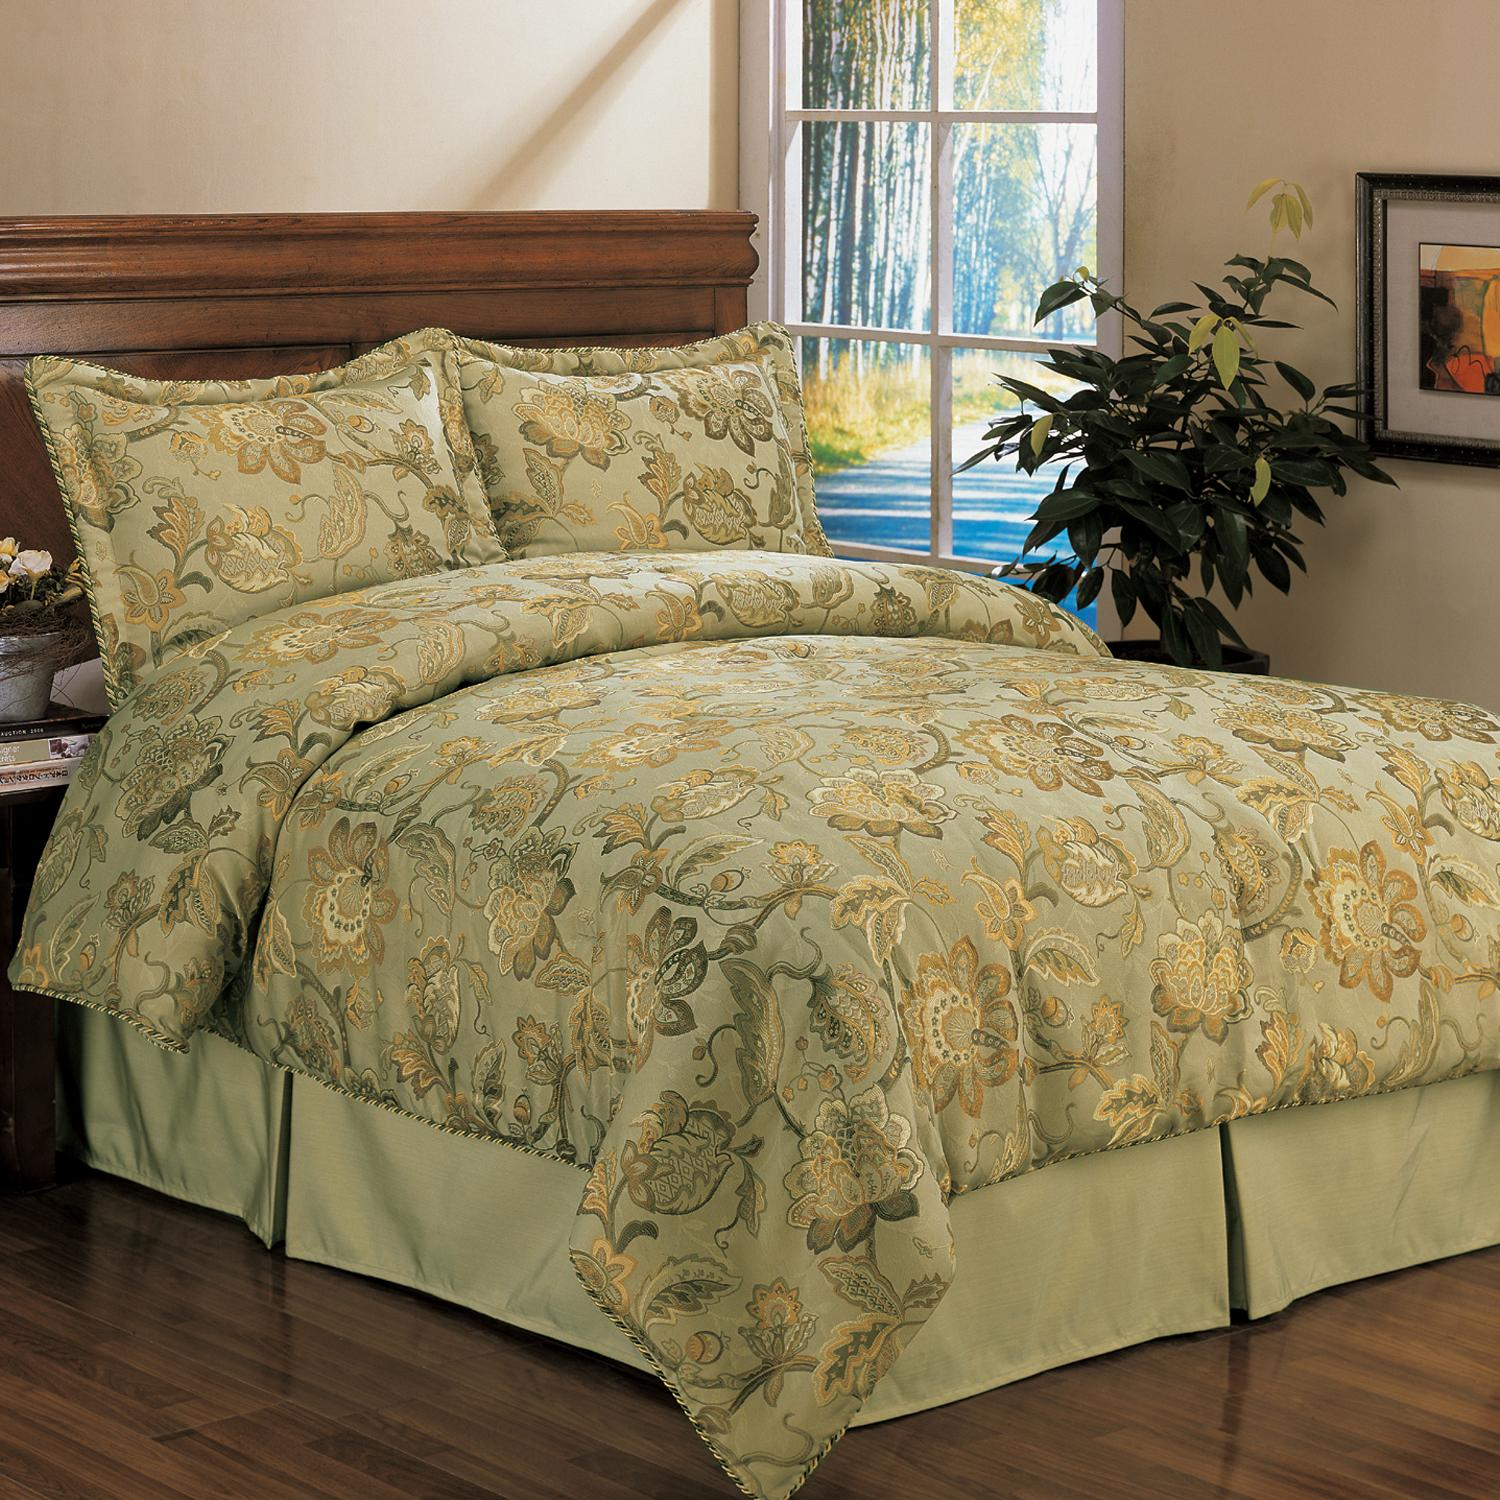 Serenade Spring 4-Piece Queen-size Comforter Set - Free Shipping Today - Overstock.com - 13191624